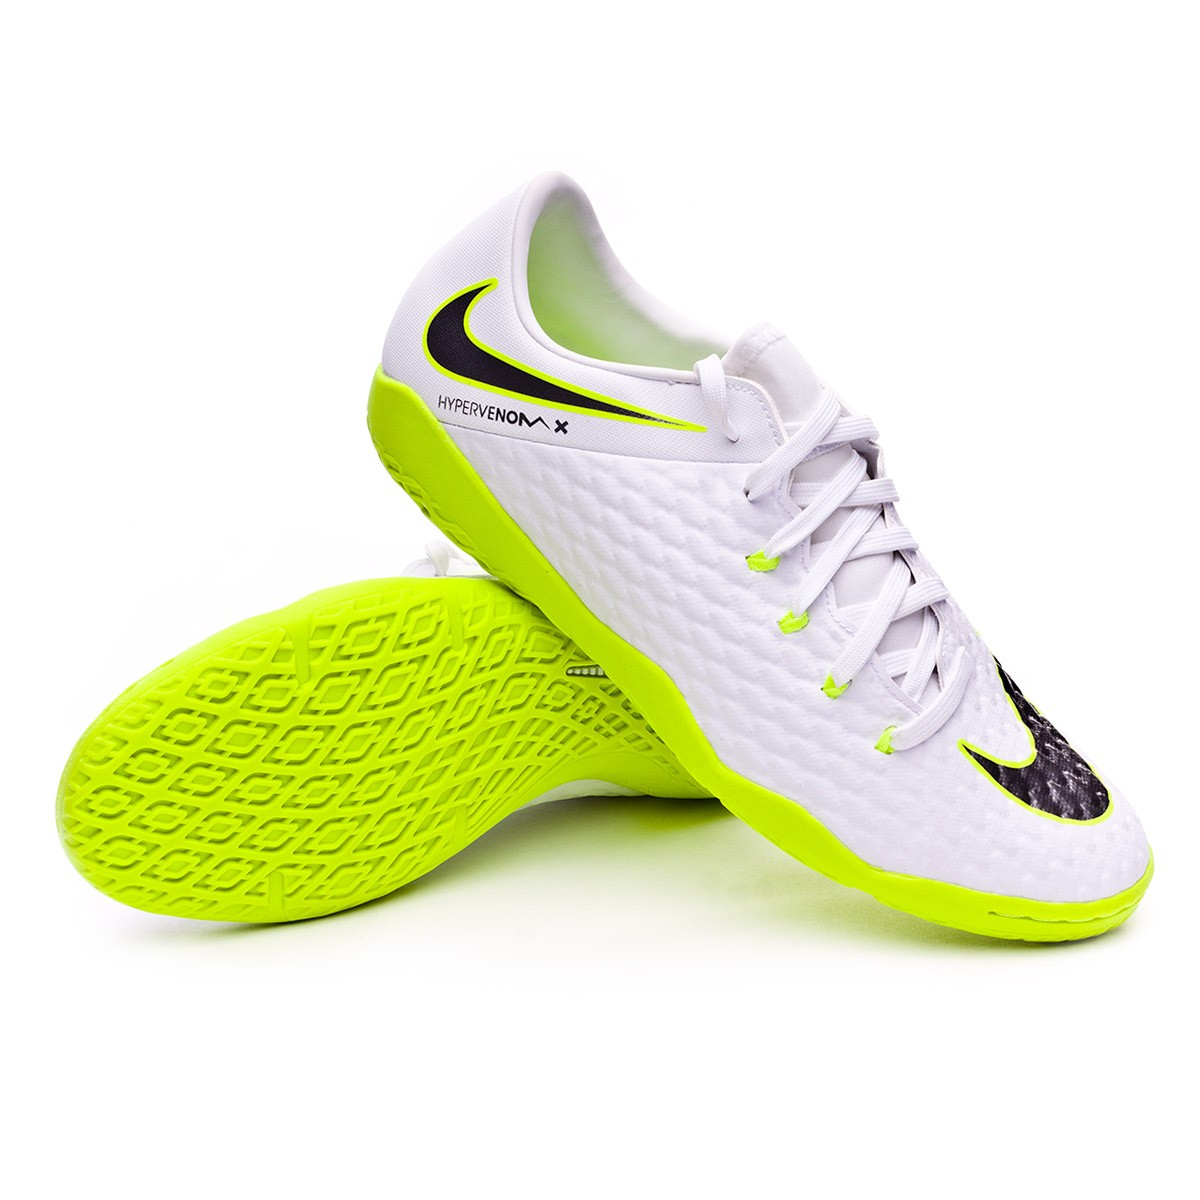 huge selection of 6bd0b 70b19 Zapatilla Hypervenom PhantomX III Academy IC White-Metallic cool  grey-Volt-Metallic cool g